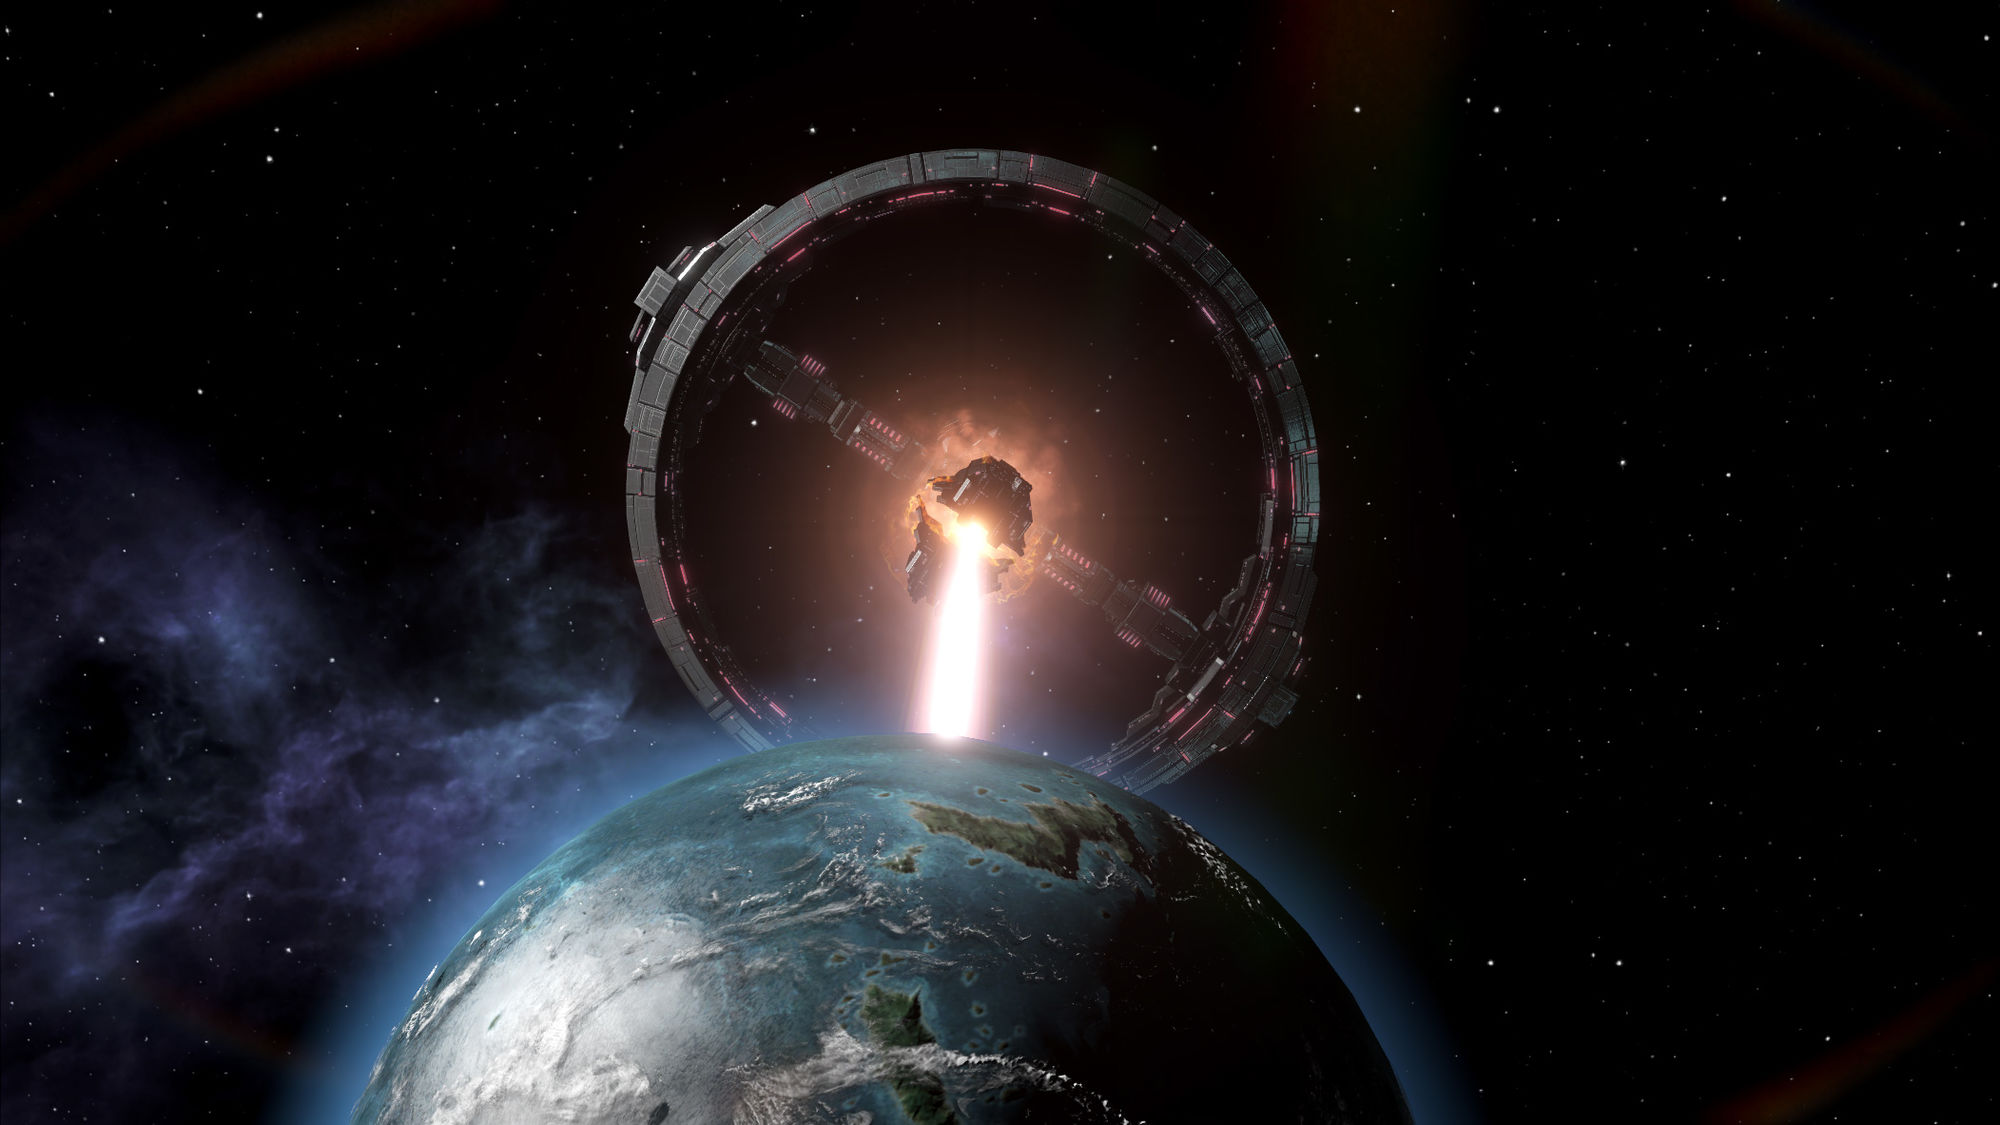 An earthlike world under fire from a death star-like weapons platform called a colossus.